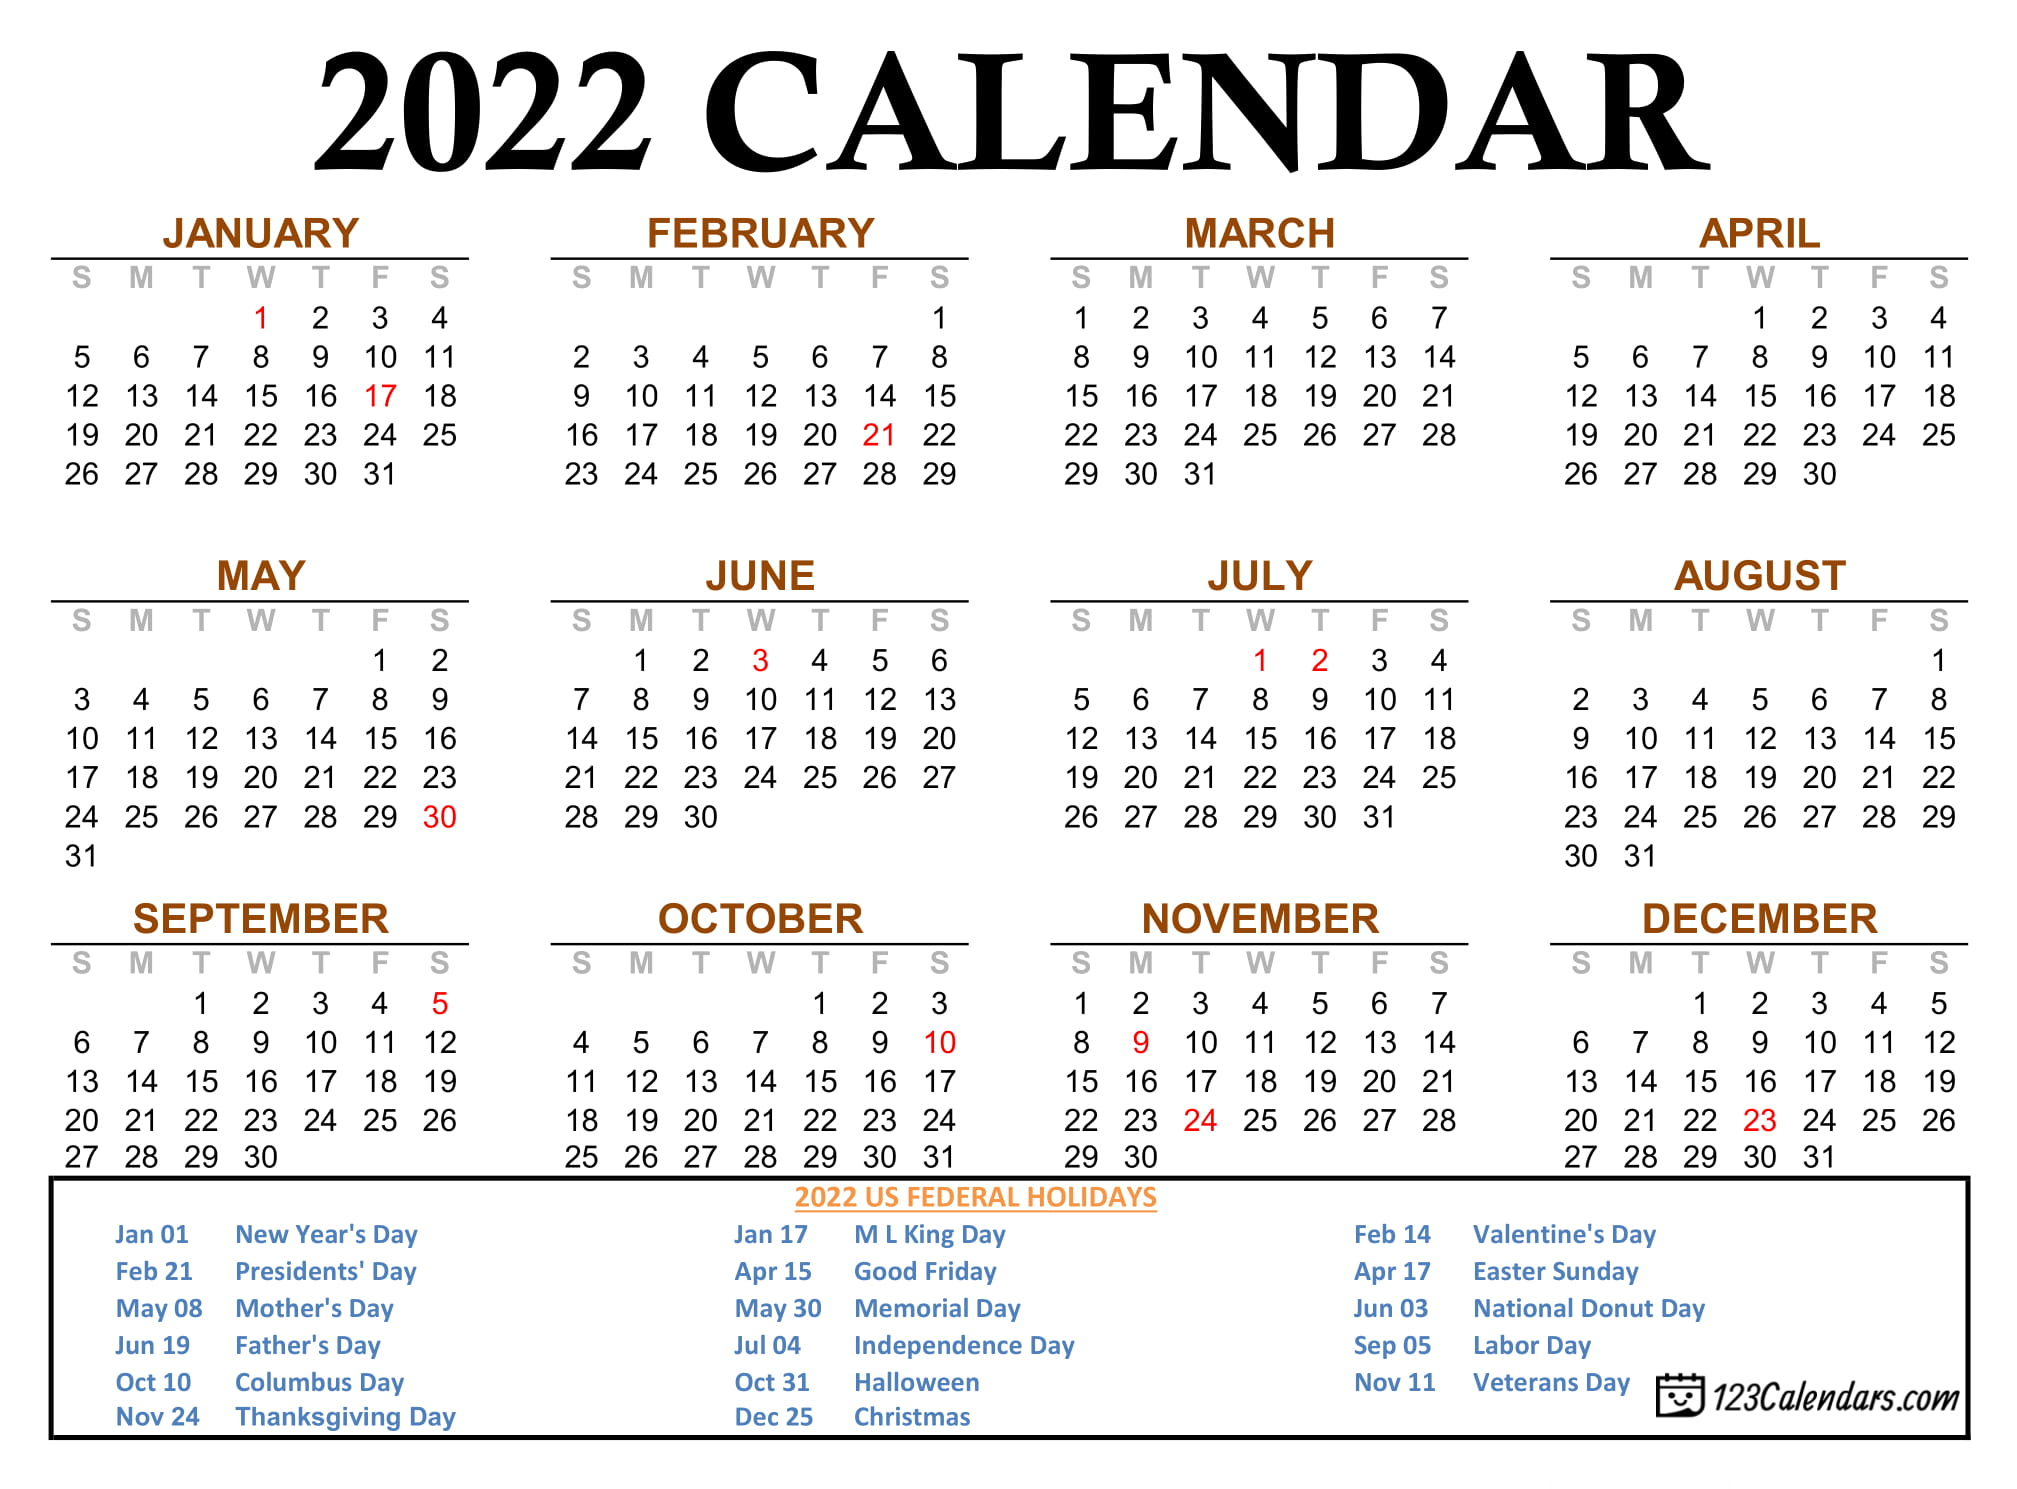 We are proud to offer a variety of seminars and programs that are pertinent to the varied work we do. Year 2022 Calendar Templates | 123Calendars.com